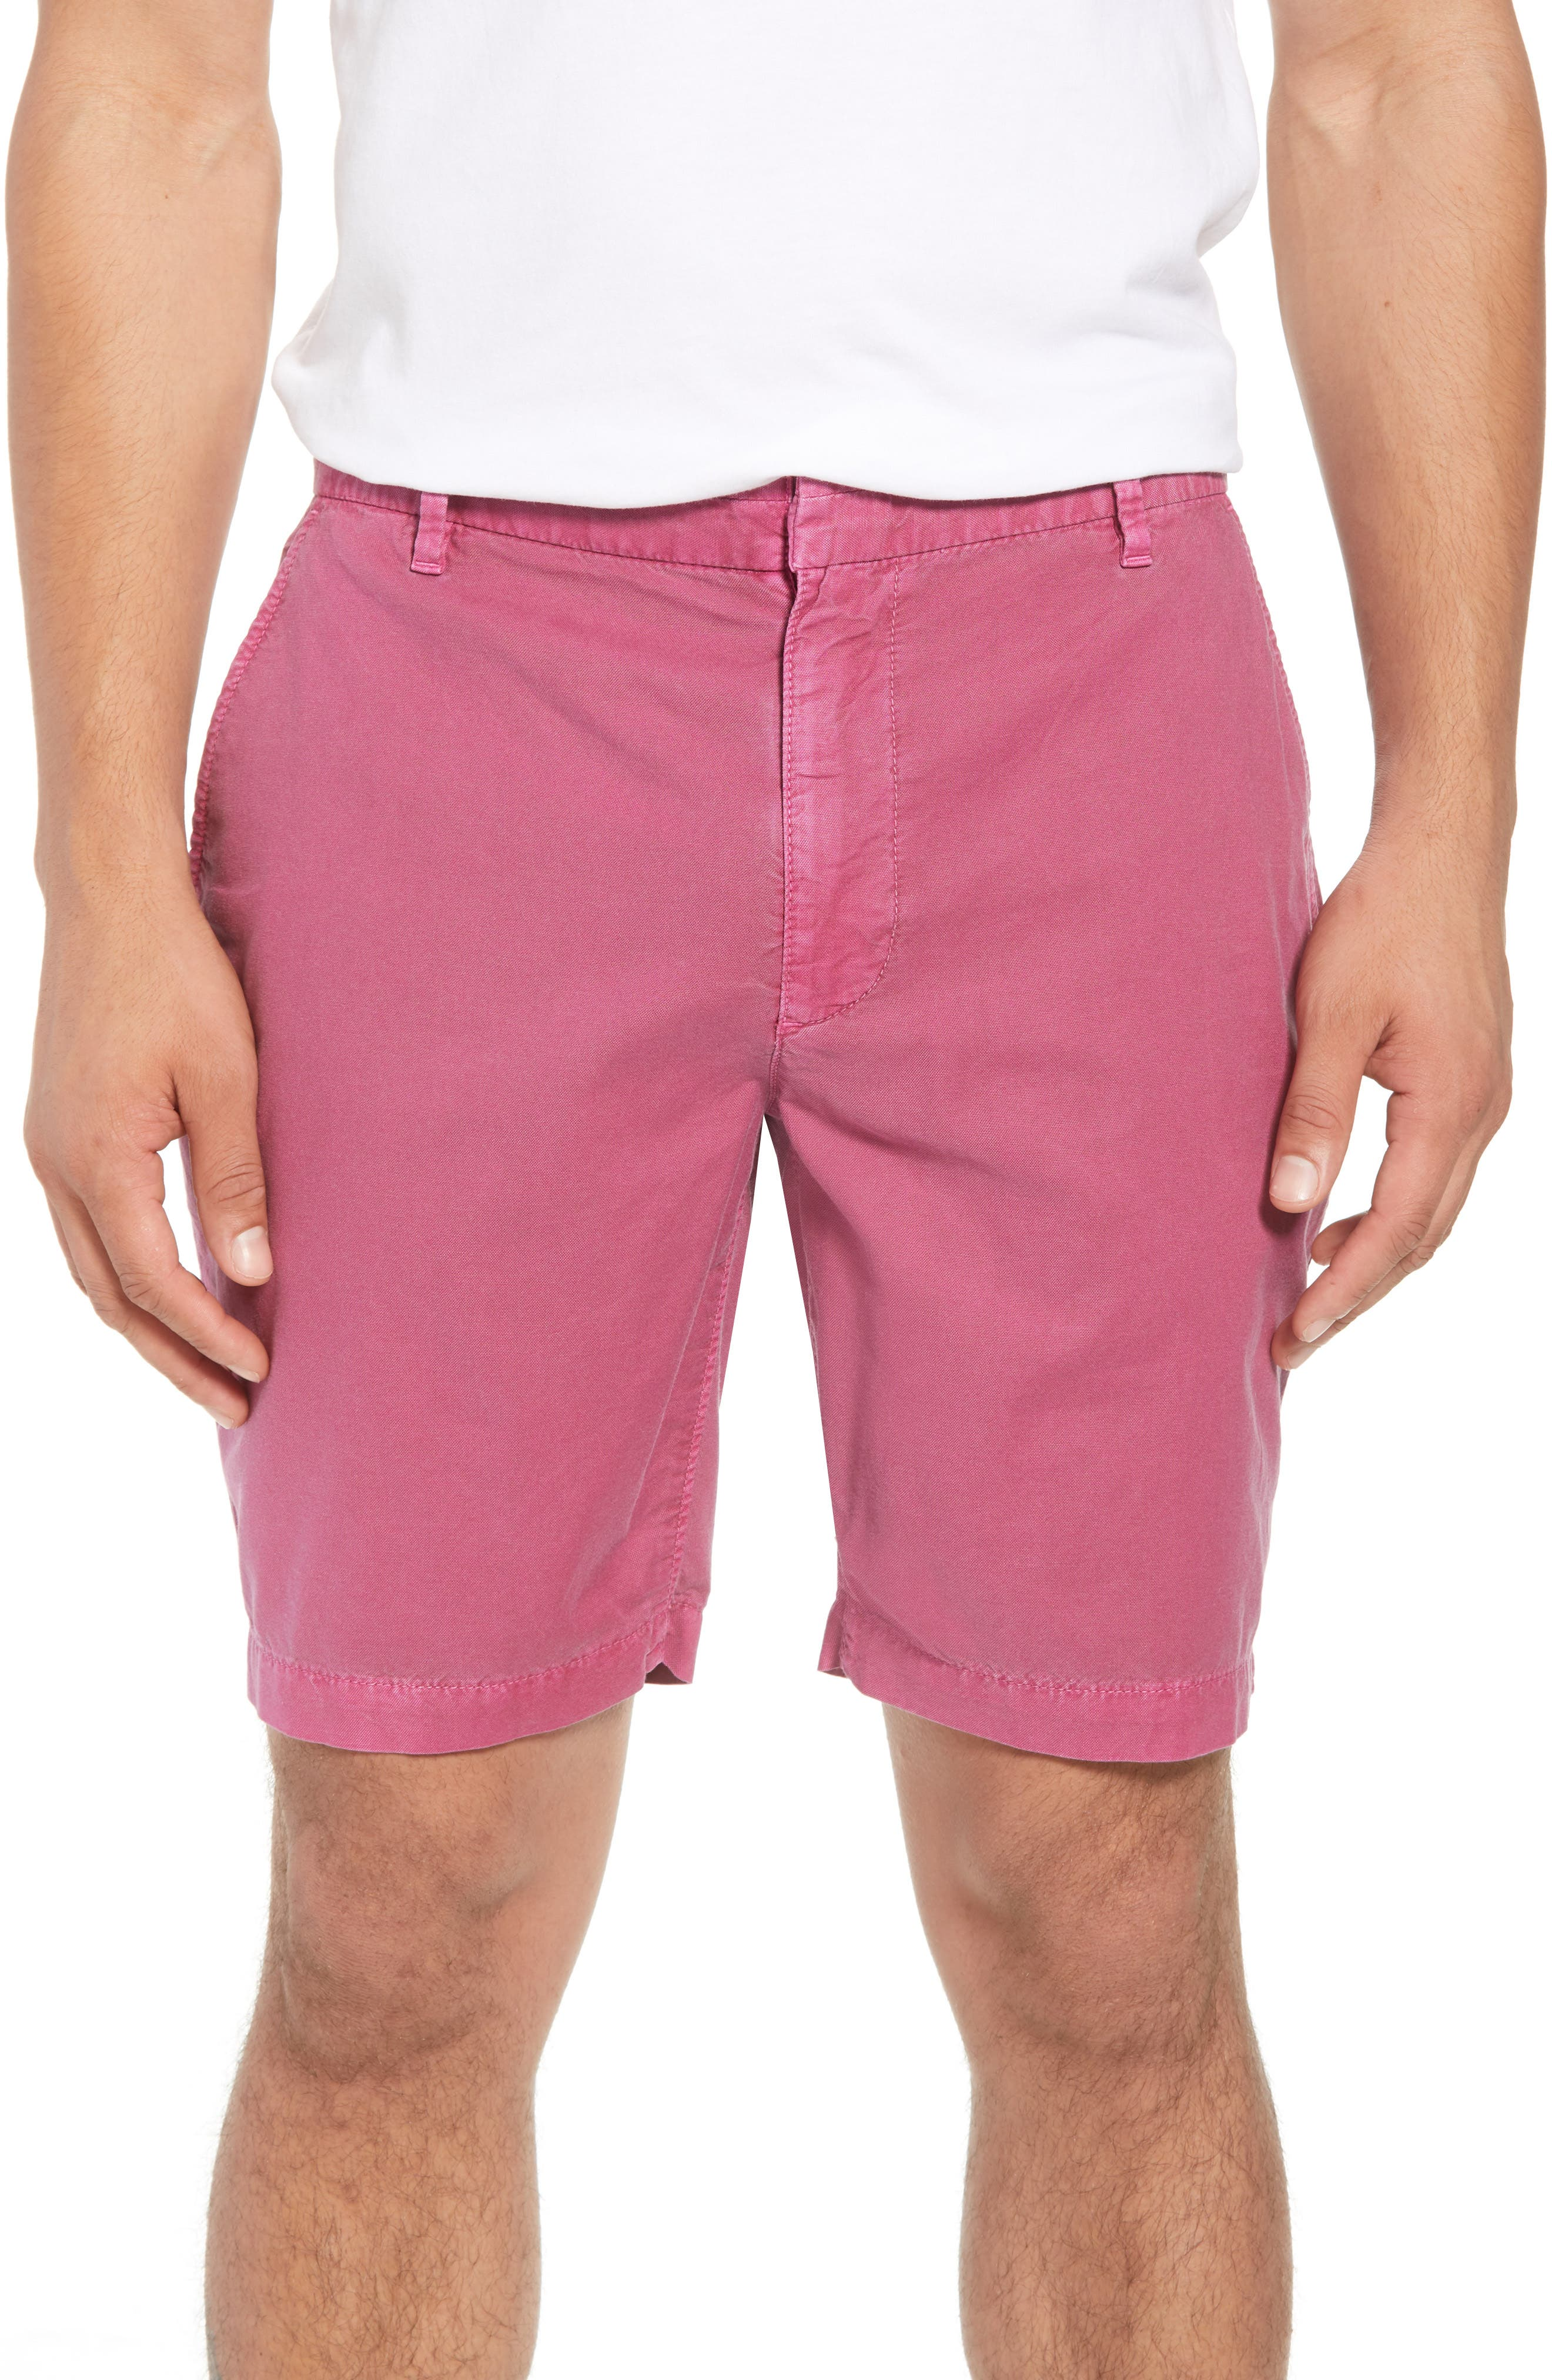 Butter Ball Shorts,                             Main thumbnail 1, color,                             Dusty Rose